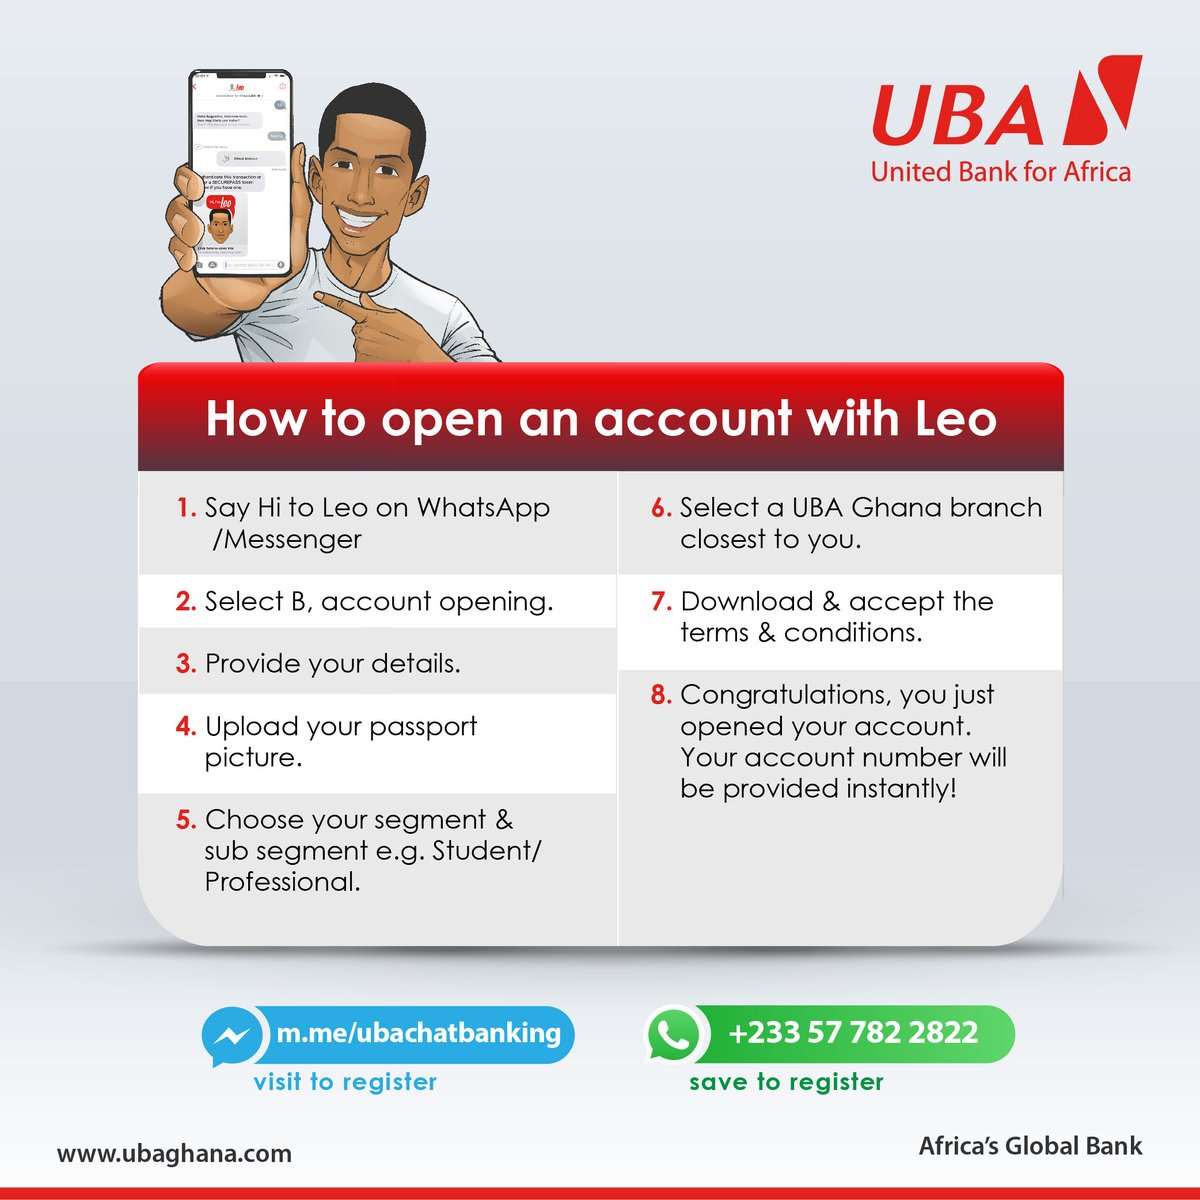 Do you wish to open a bank account without visiting the bank?  Leo can make that happen in just 5 minutes. Click here: https://t.co/WQRsdQVFz9 to get started. #LeoMagic #AfricasGlobalBank #StaySafe https://t.co/4mFS435Is1